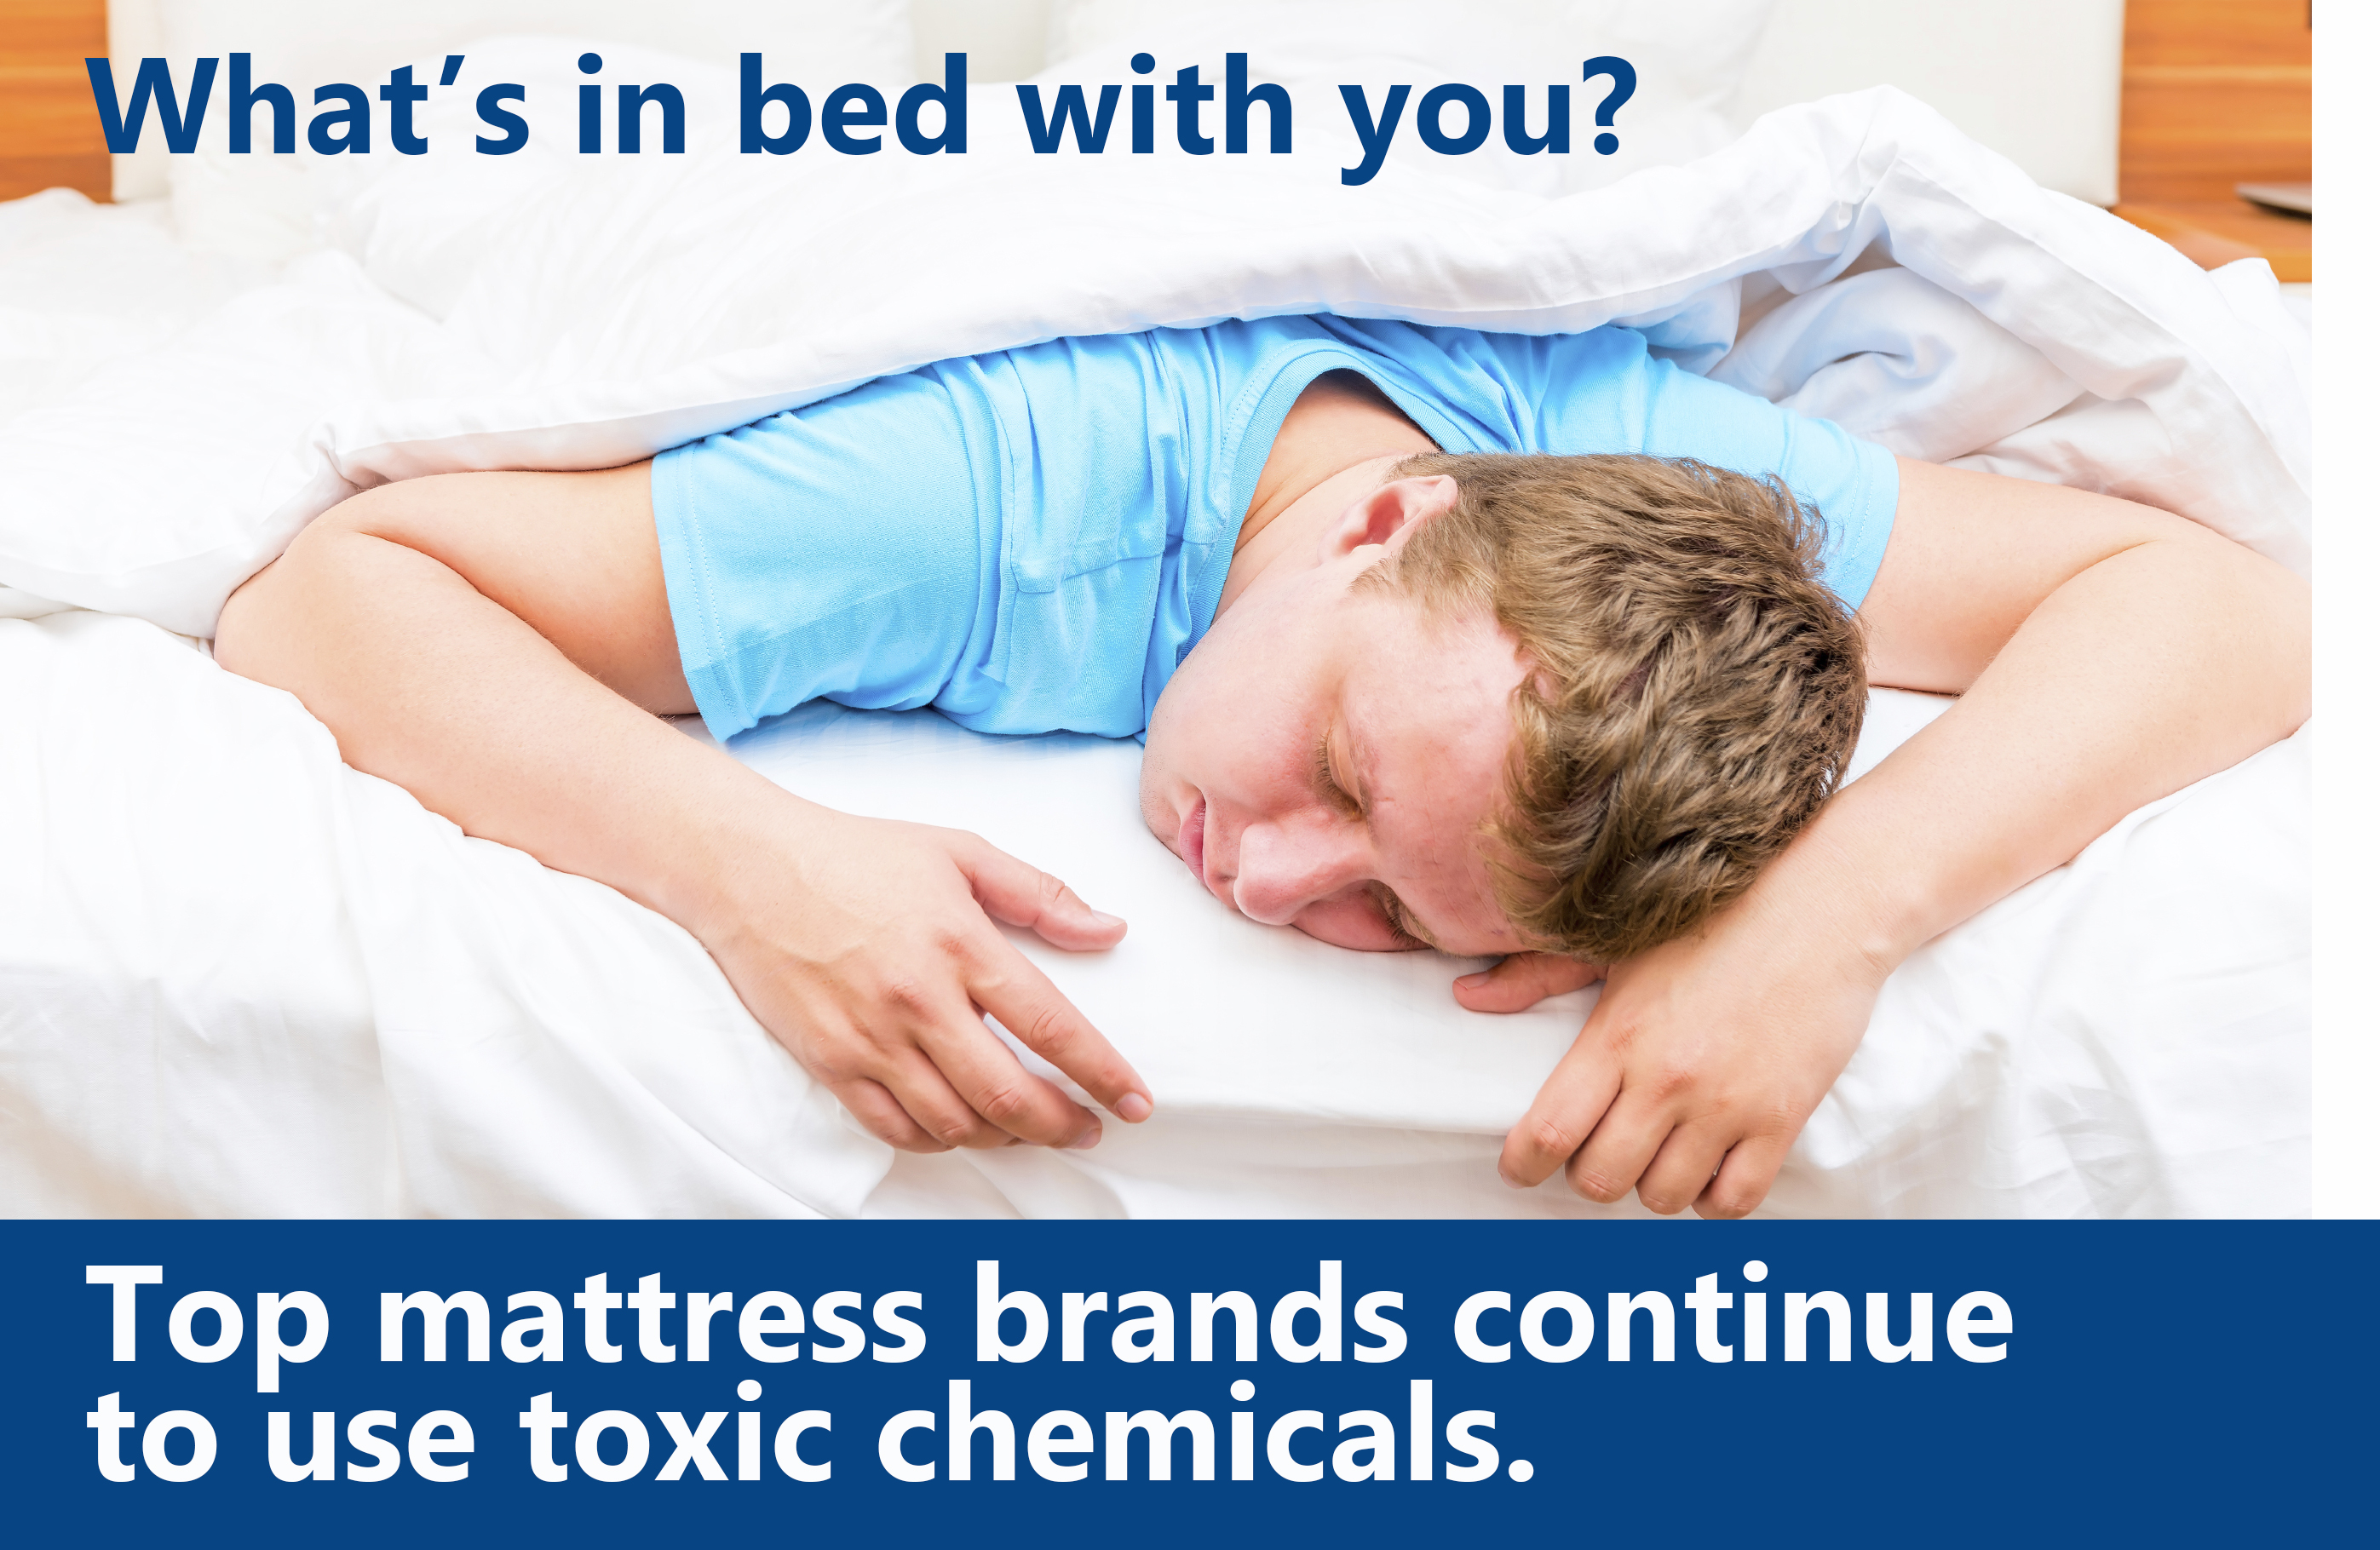 Report Looks at What's in Bed with You | Clean Water Action